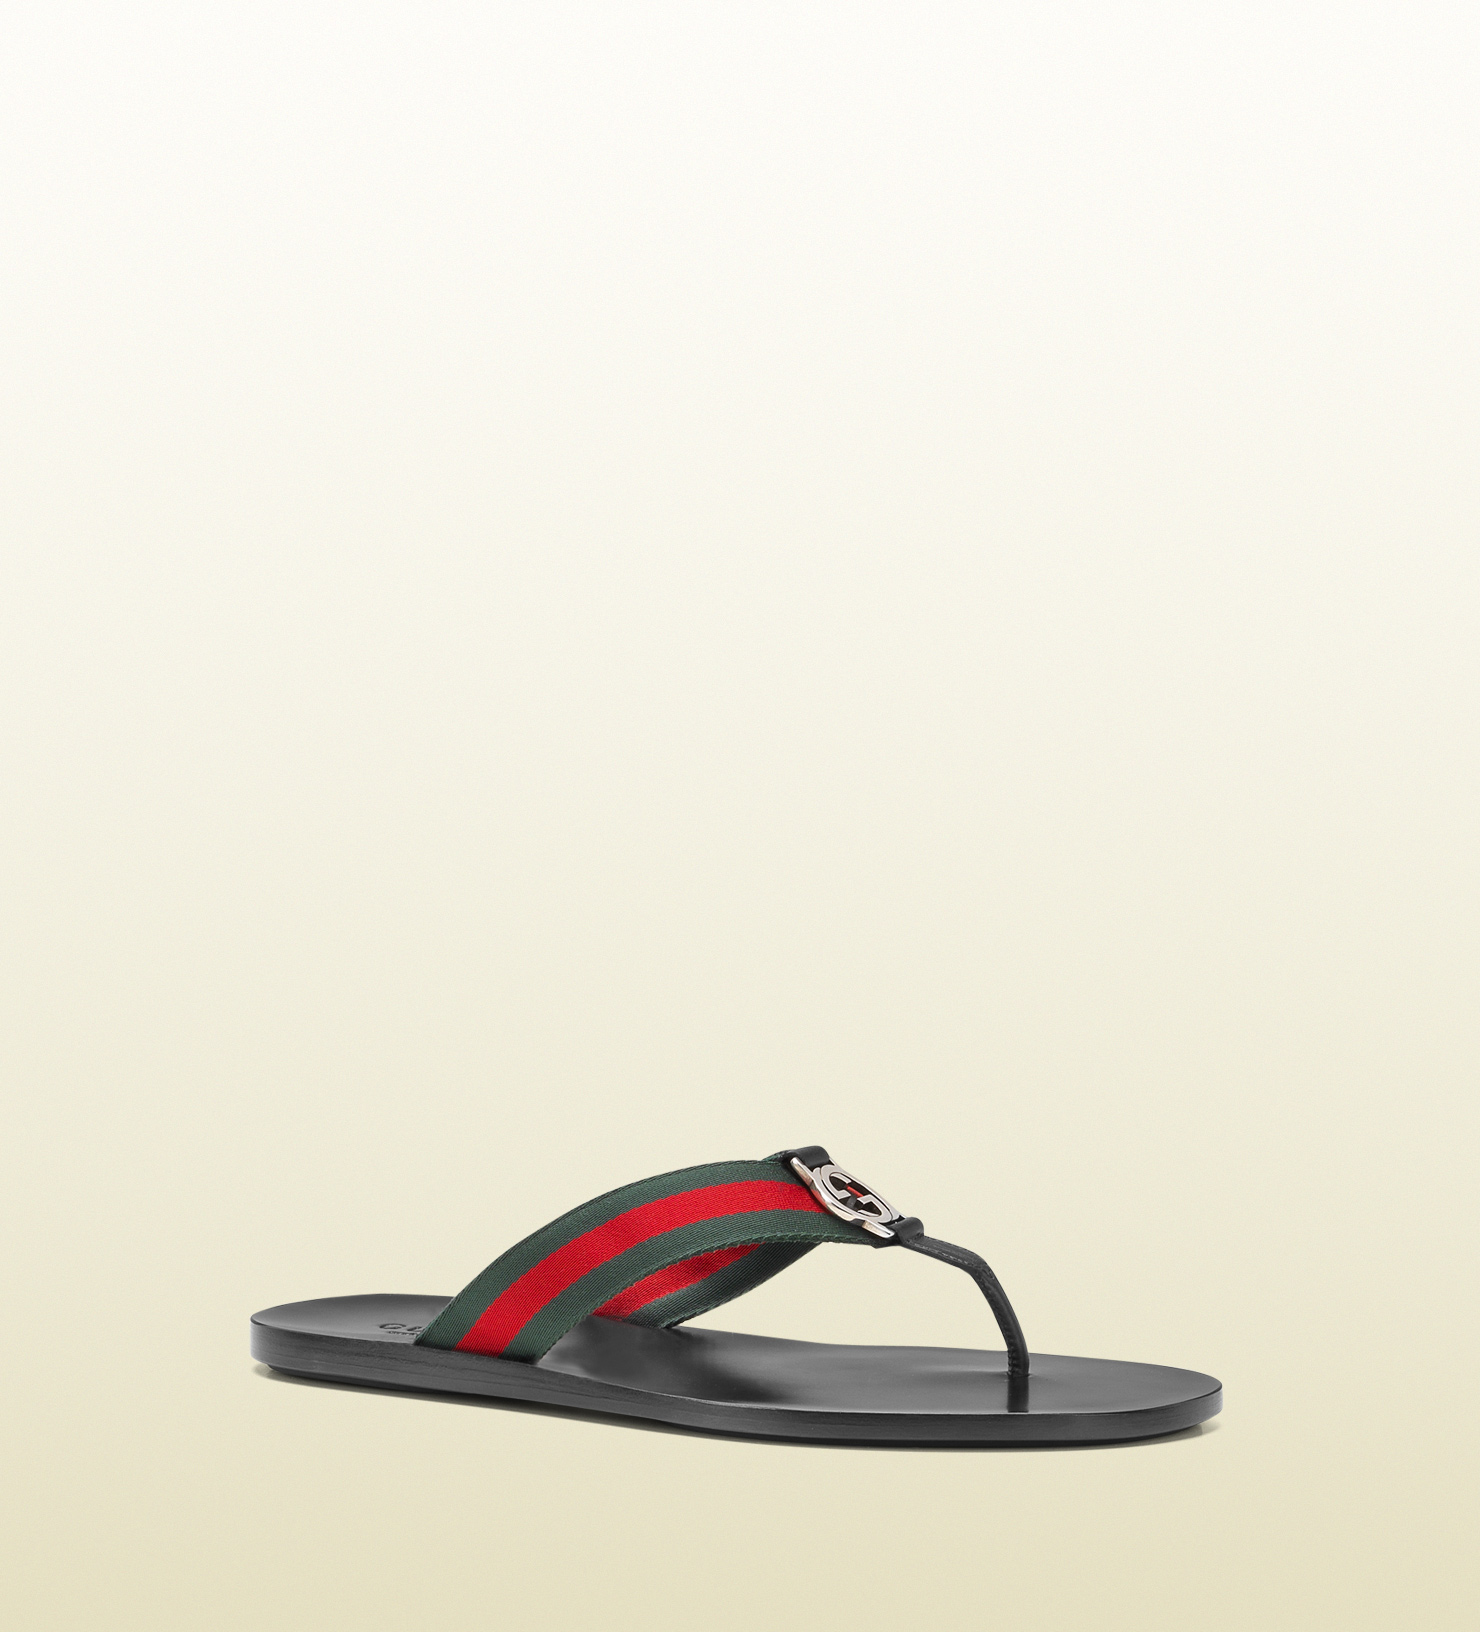 0167a0ccf Lyst - Gucci Signature Web Thong Sandal in Black for Men